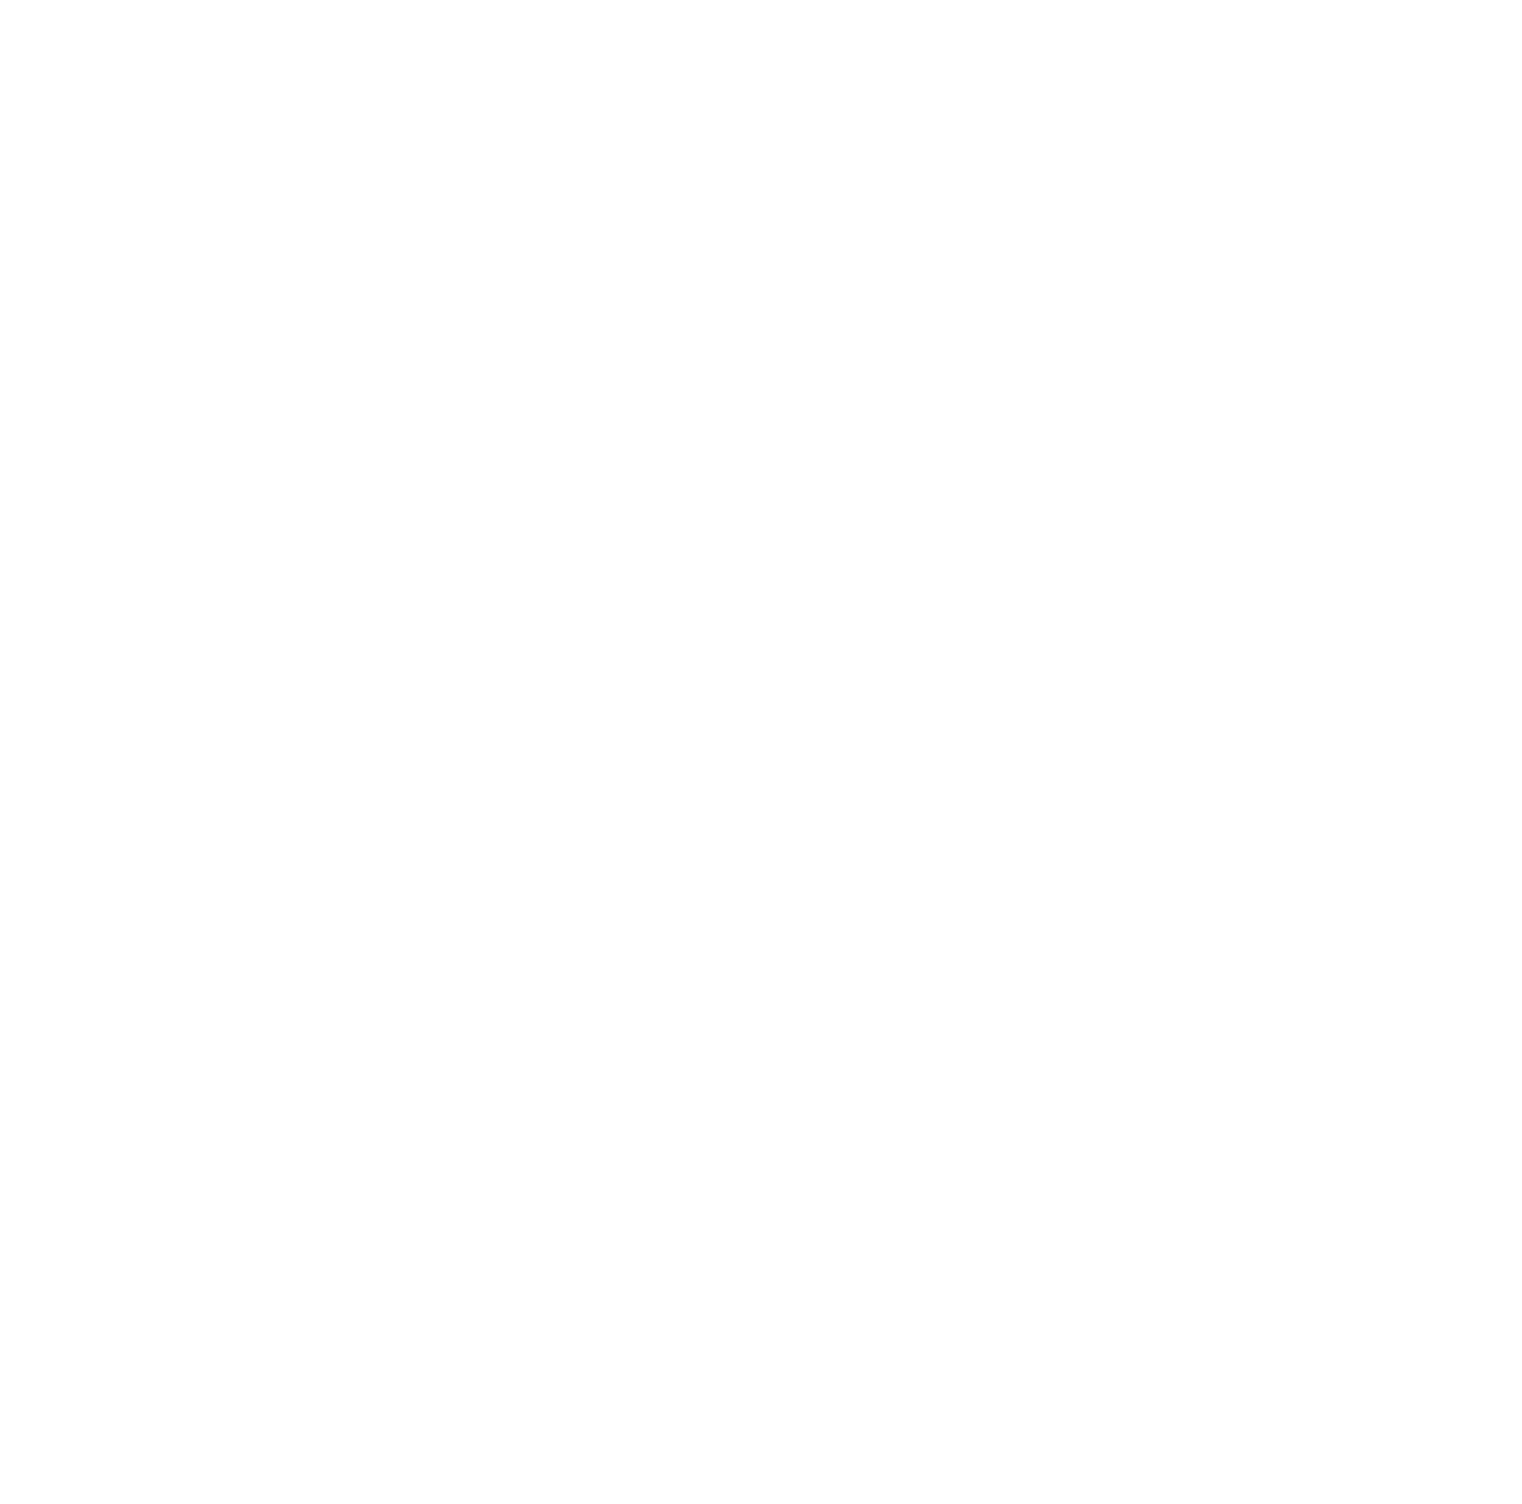 nightcoffee.org